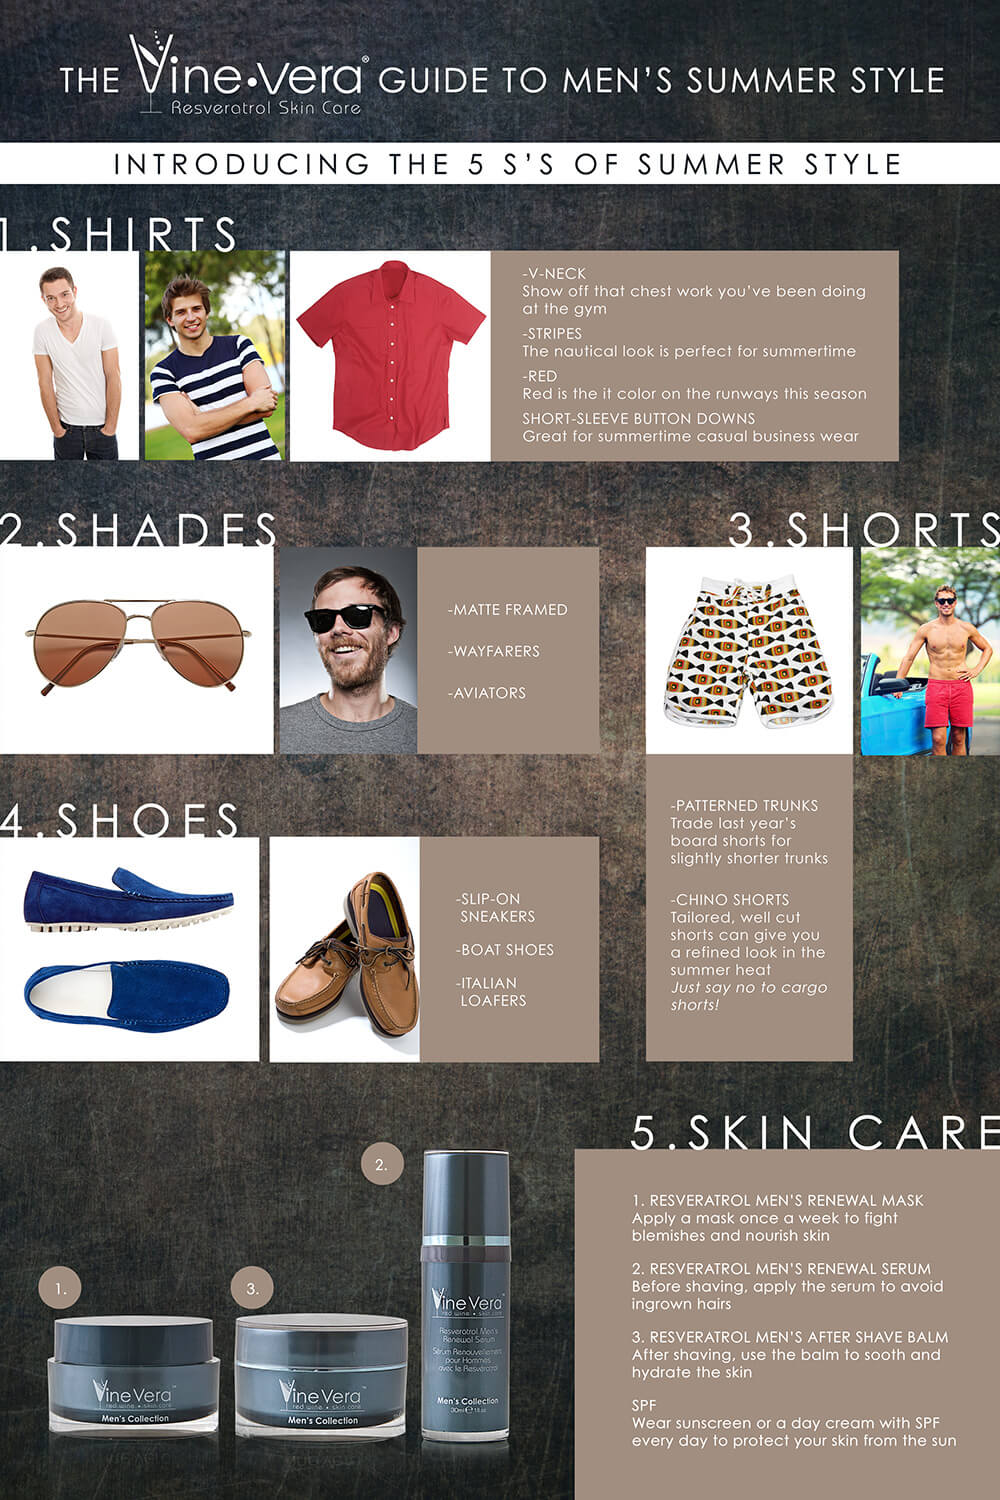 Infographic on men's summer style